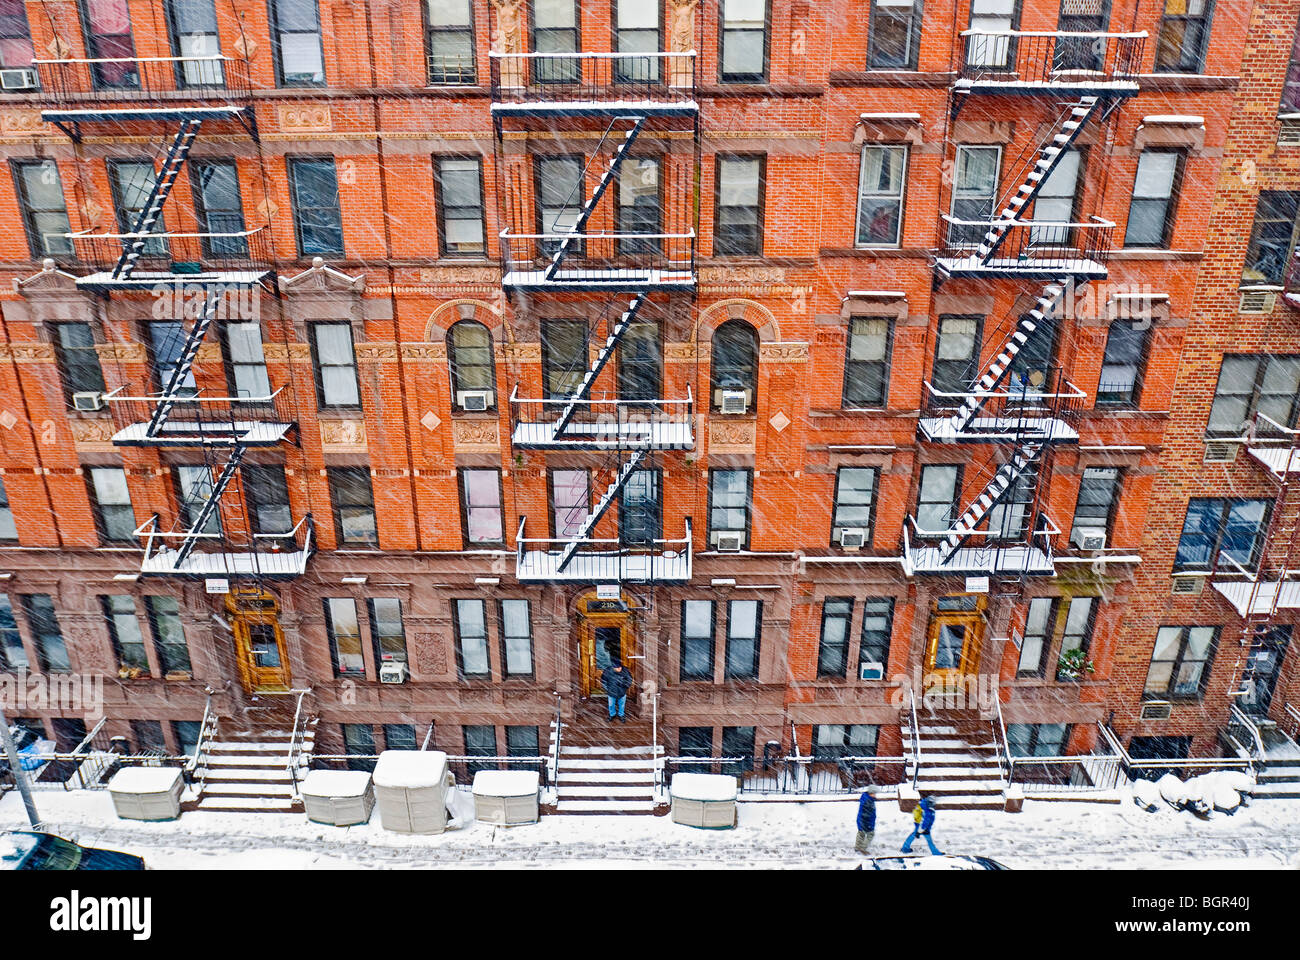 Delicieux Tenement Apartment Buildings In New York City During Winter Snowstorm.